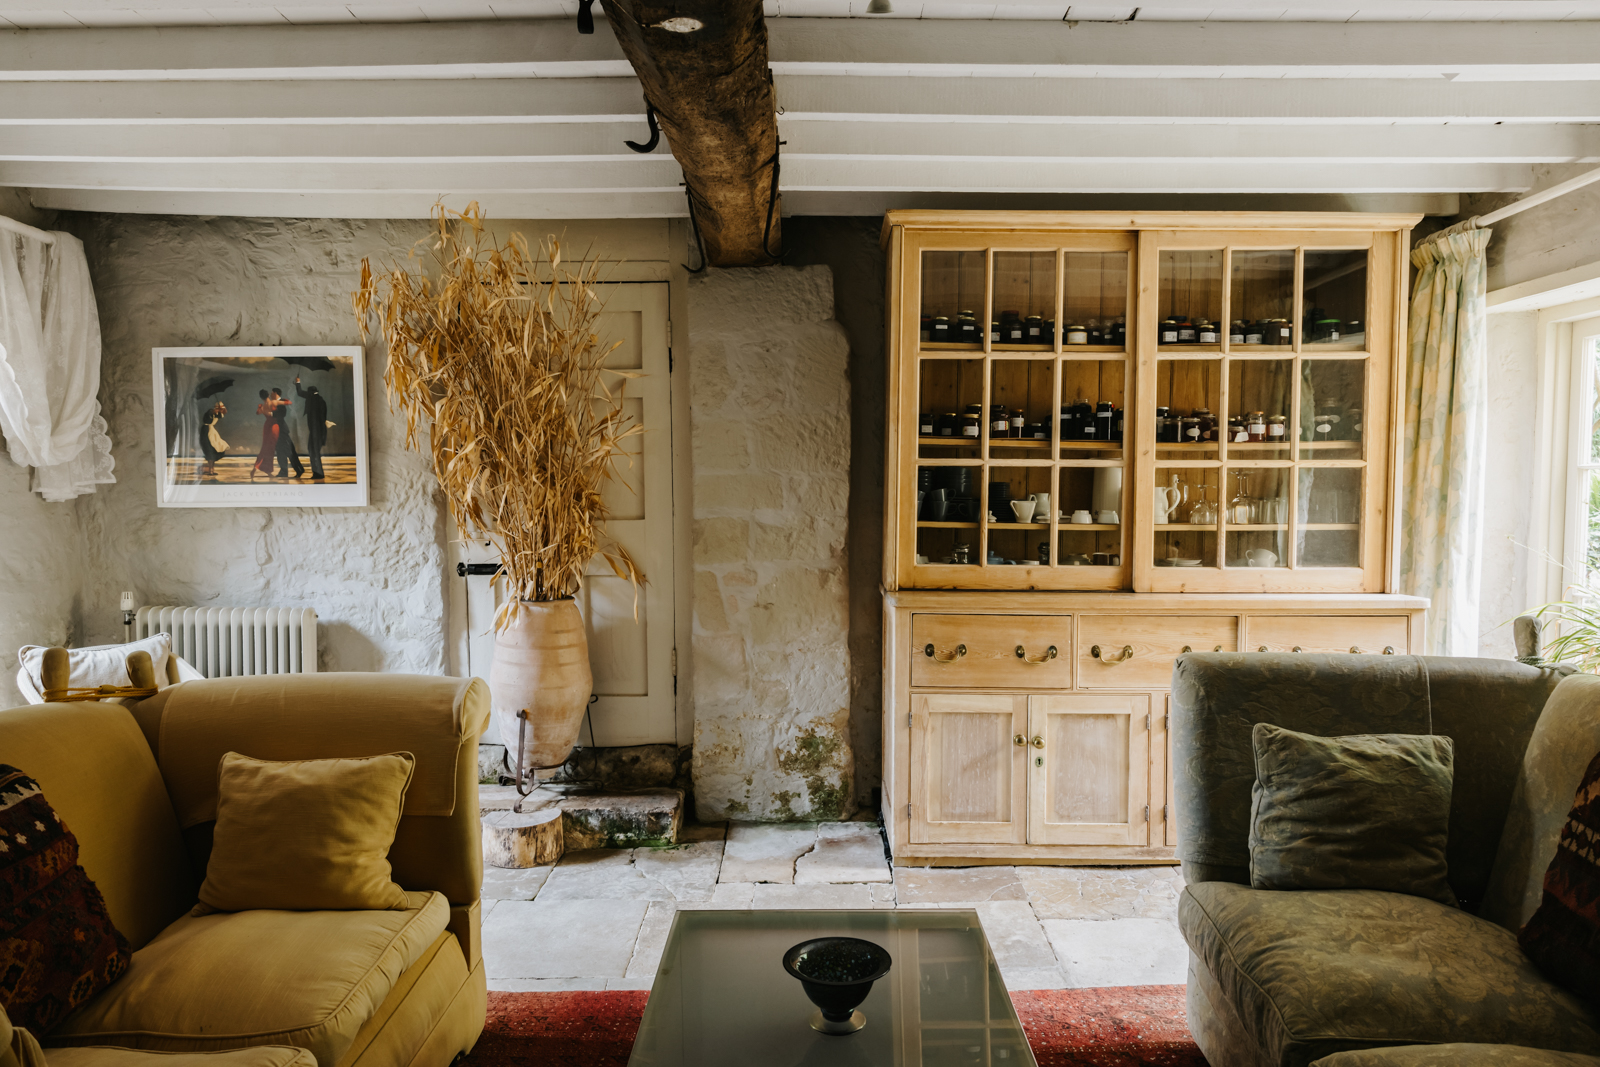 Stone floors and walls, rough hewn beams and raftered ceilings feature in the livingroom